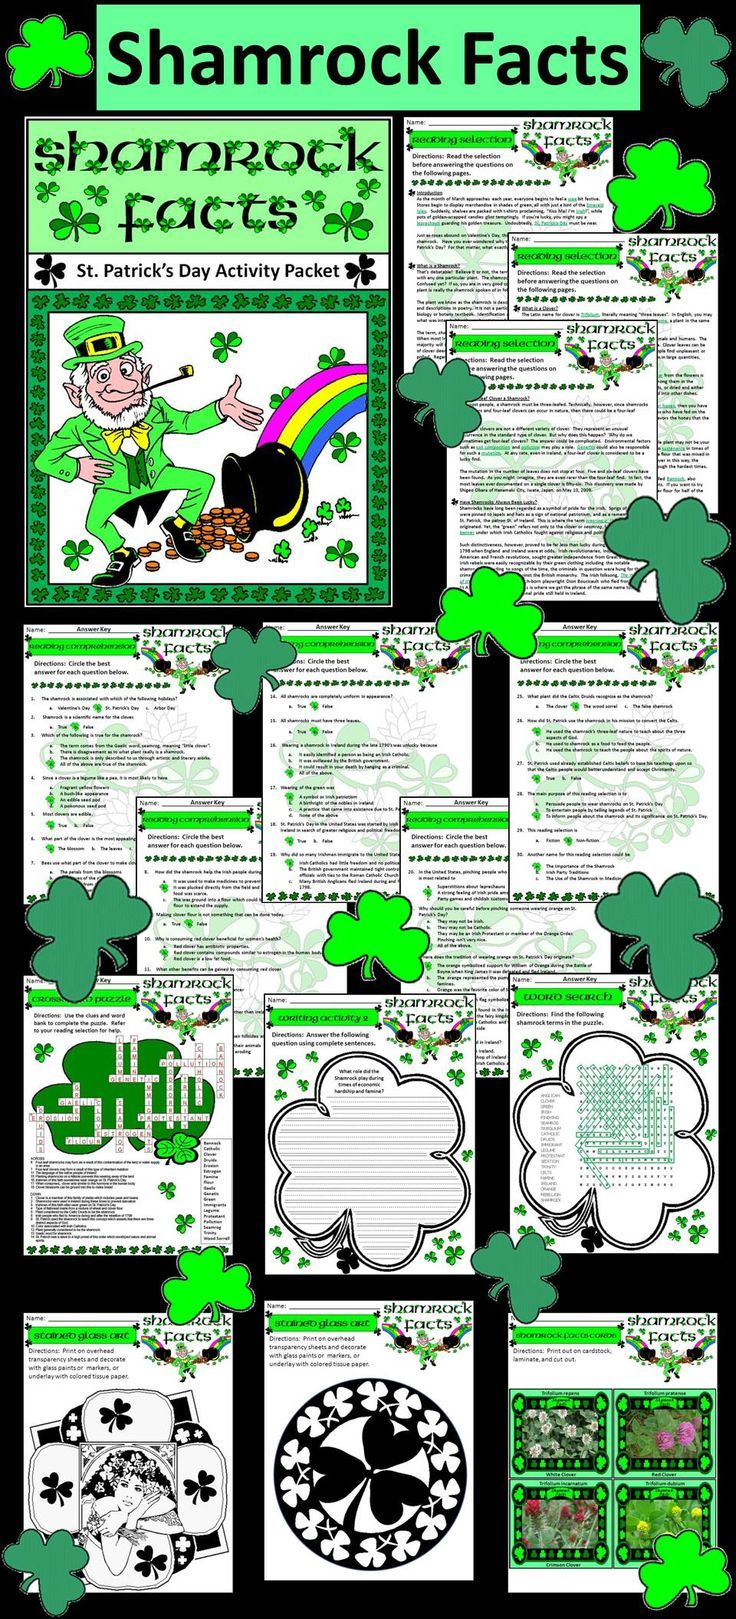 Uncategorized Shamrock History st patricks day activities shamrock facts activity packet detailing the history and science of the